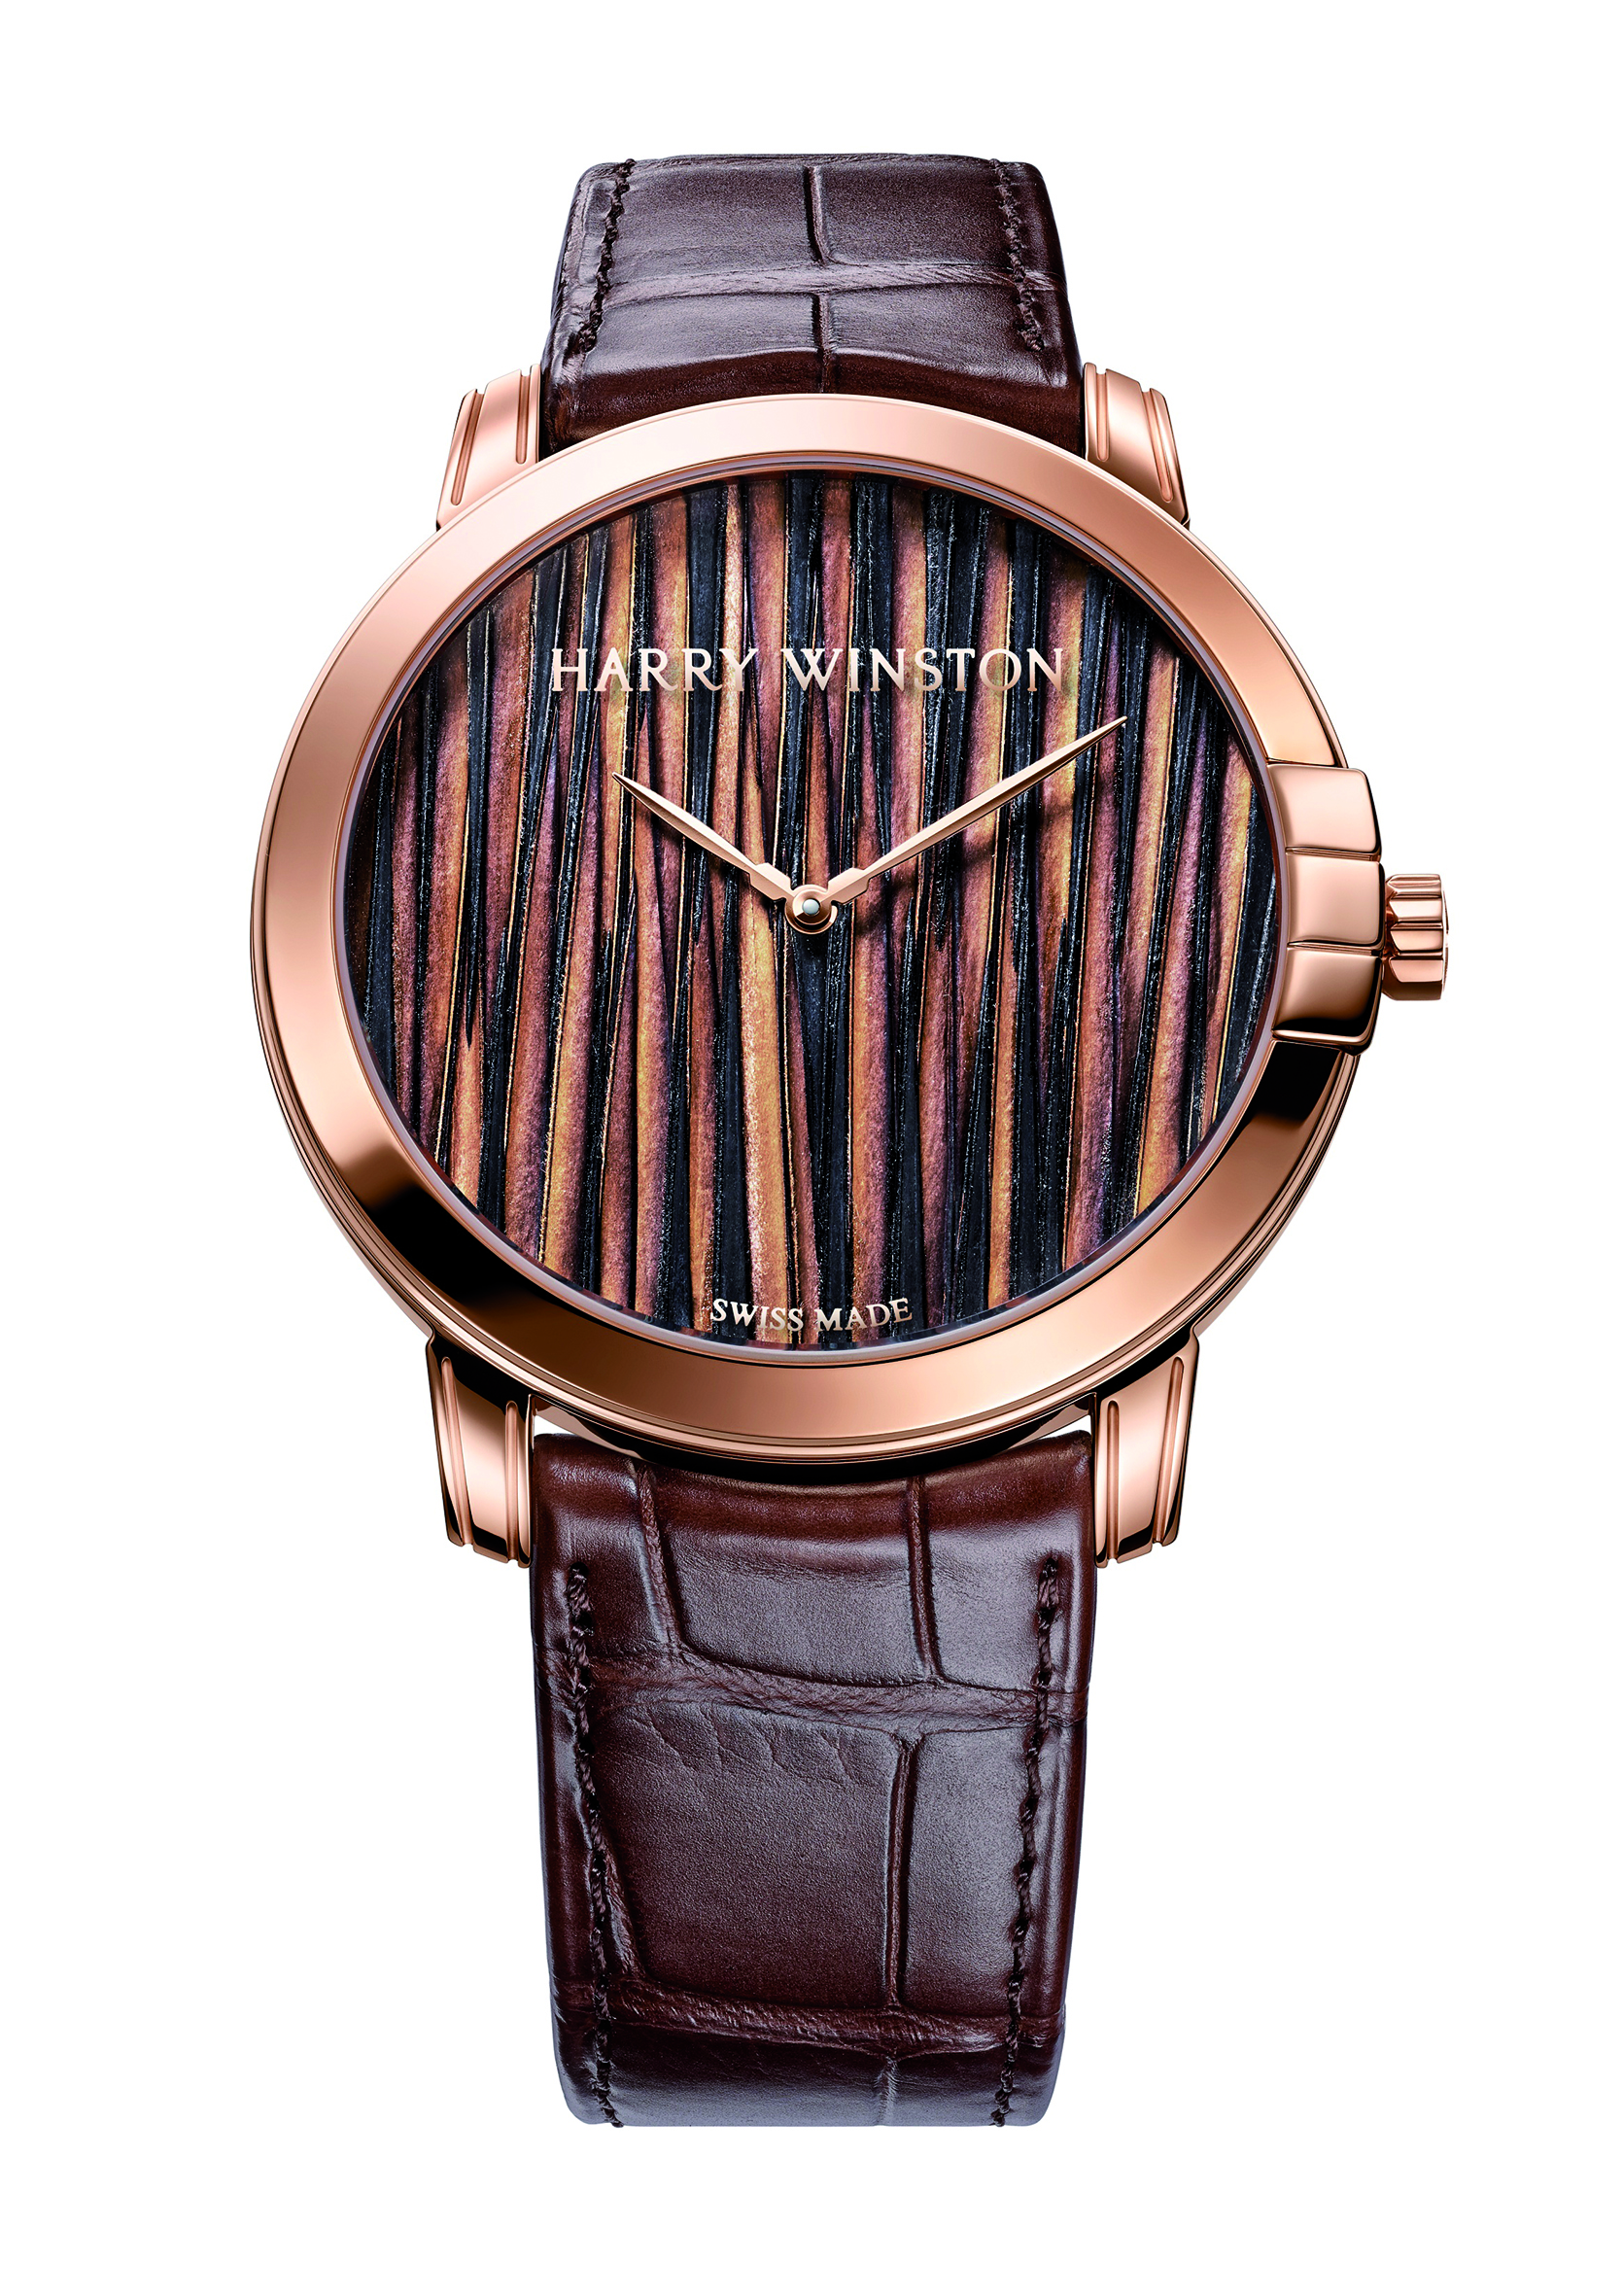 HQ_HarryWinston_MidnightFeathersAutomati 42mm_SMALL